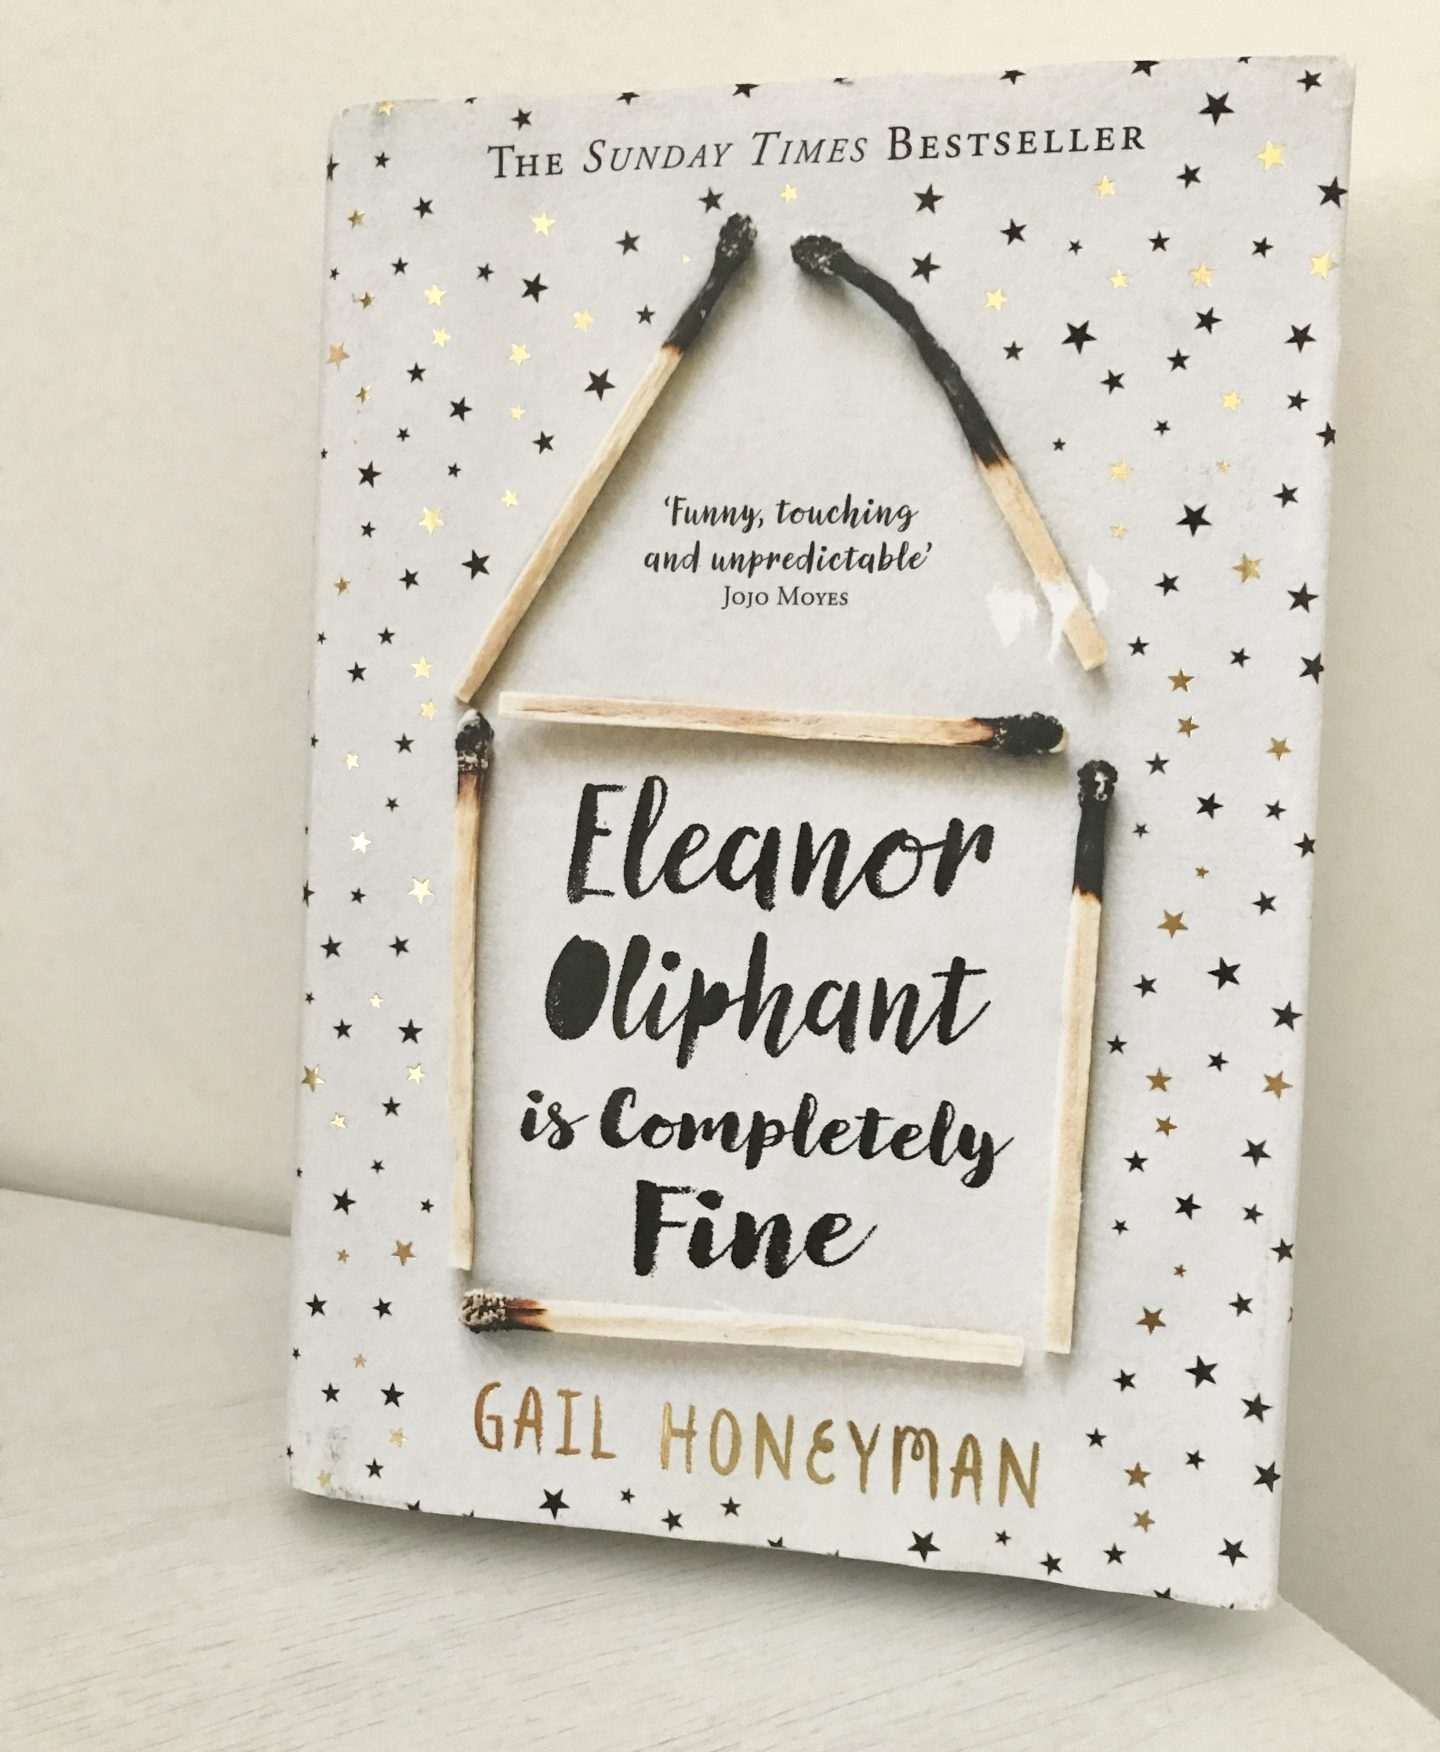 Eleanor Oliphant is completely fine – book review